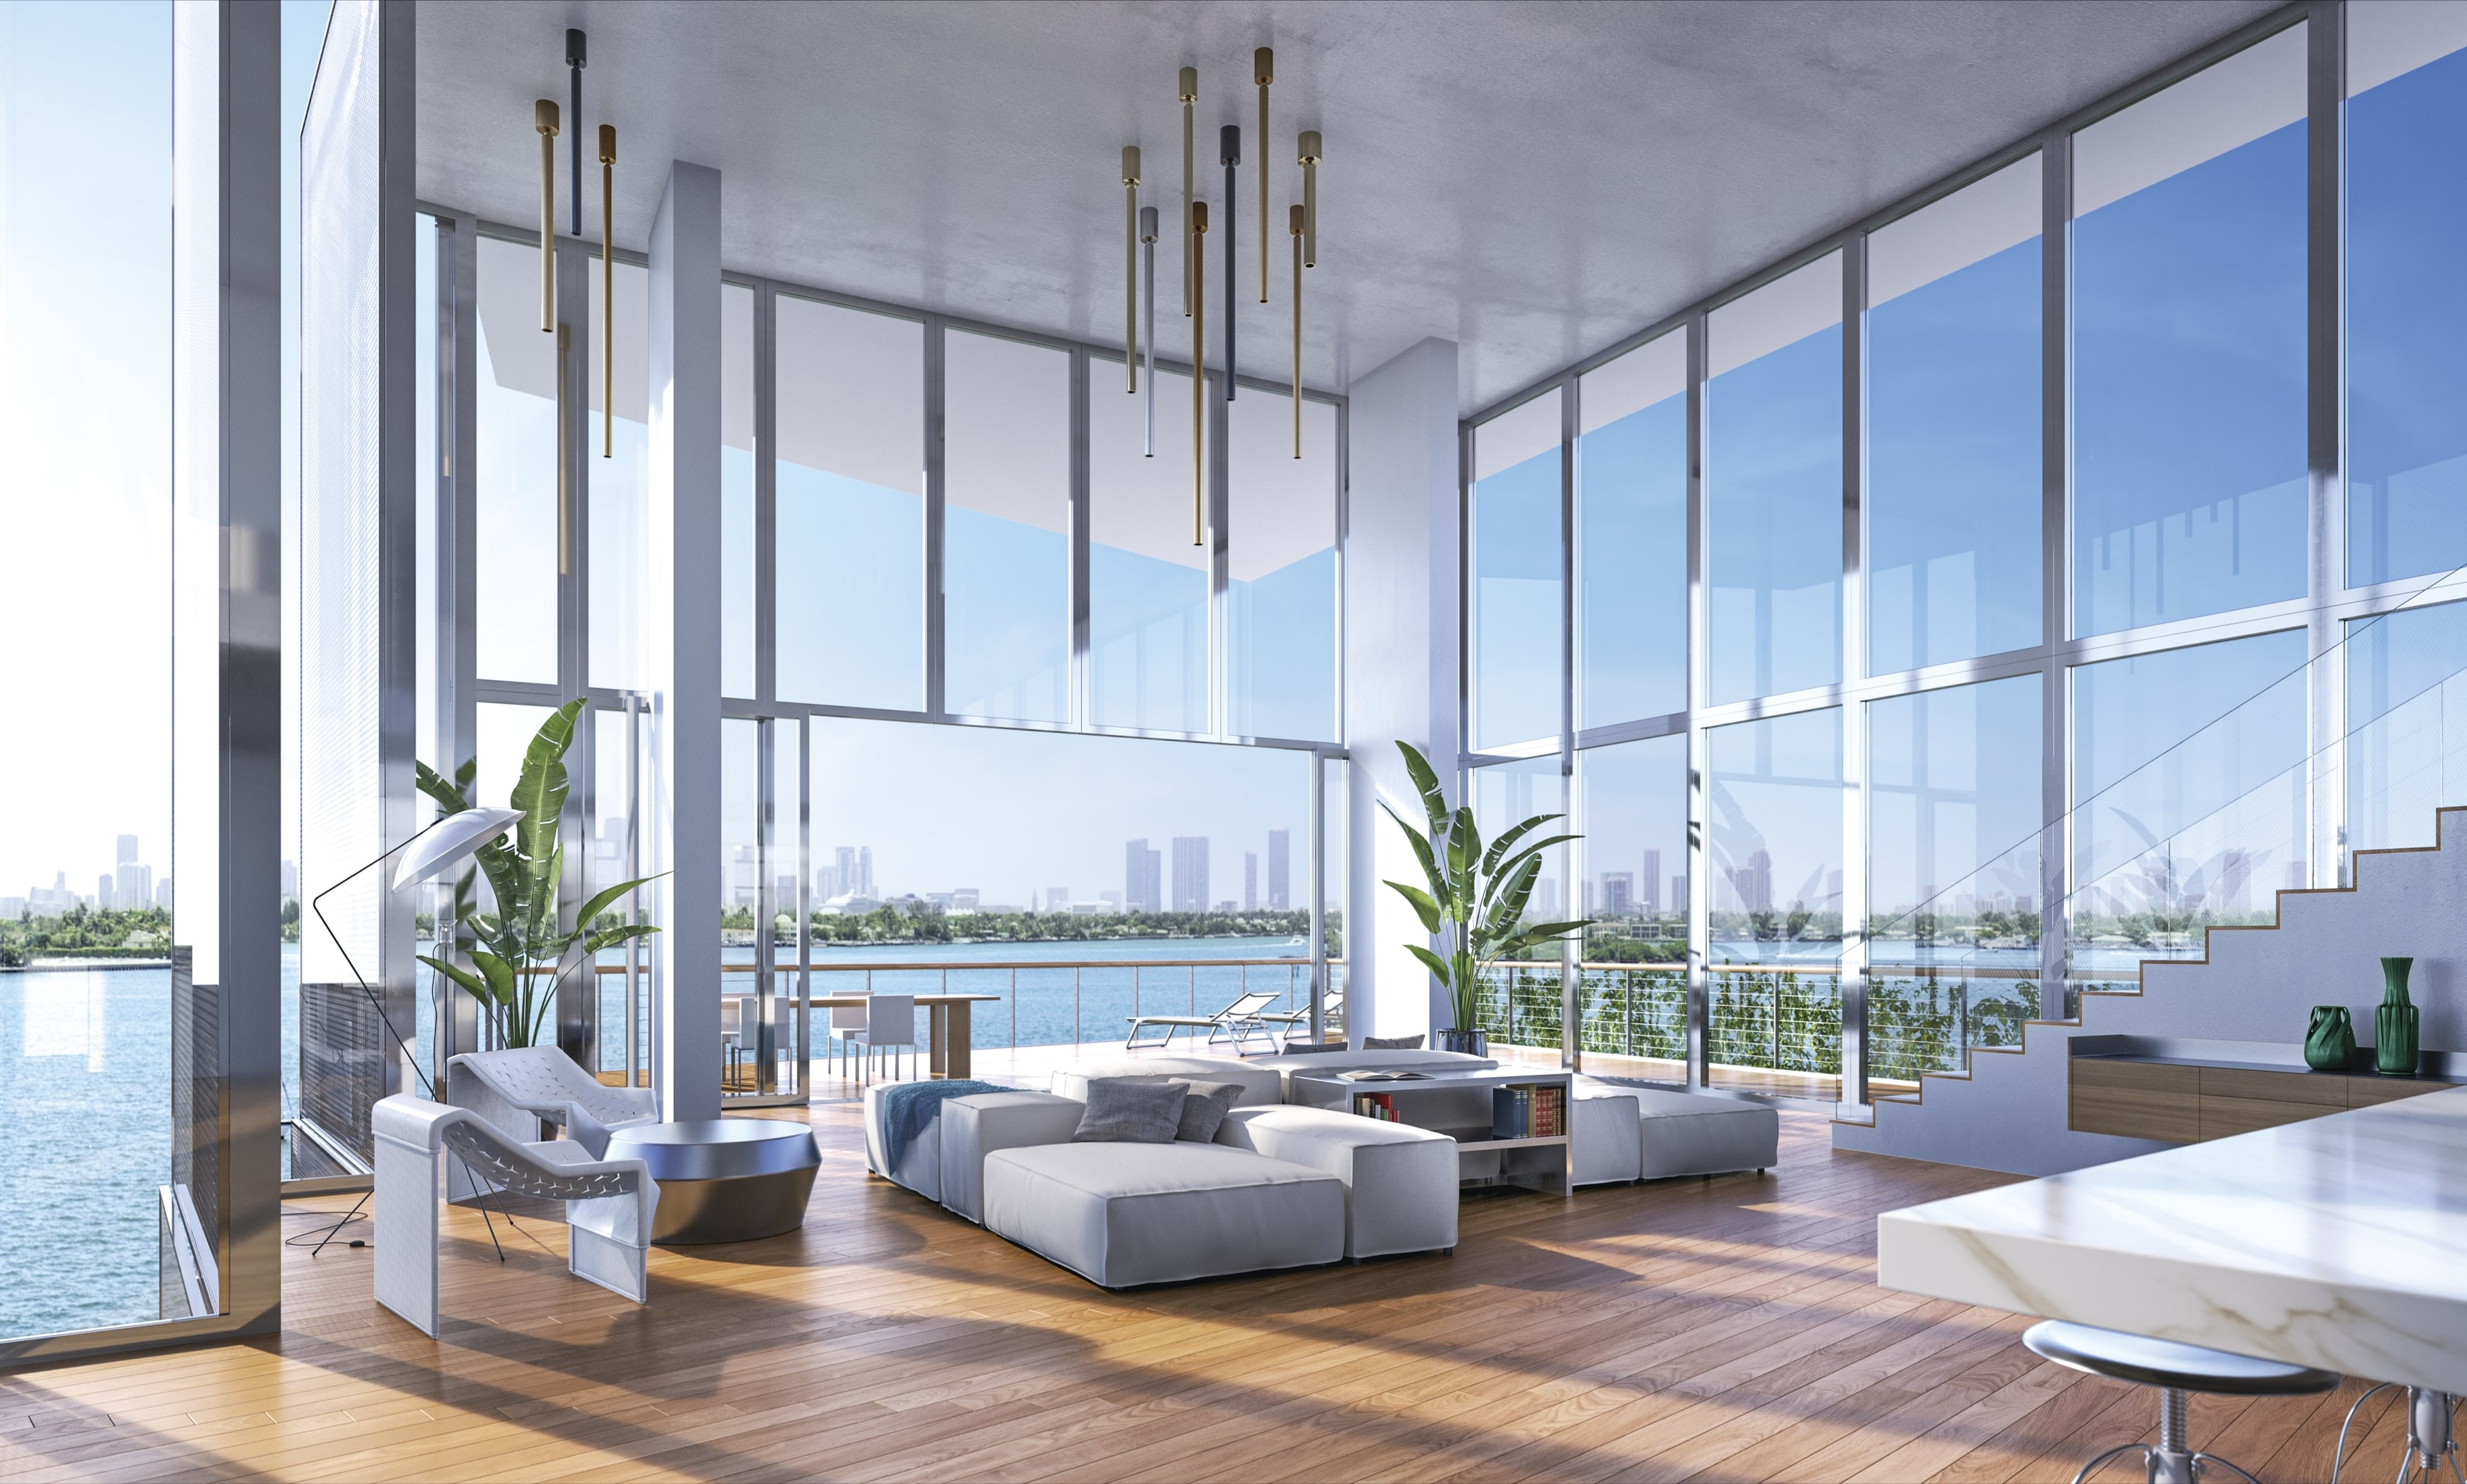 Monad_Terrace_Penthouse_Living_Room_JDS_Development-0001.jpg